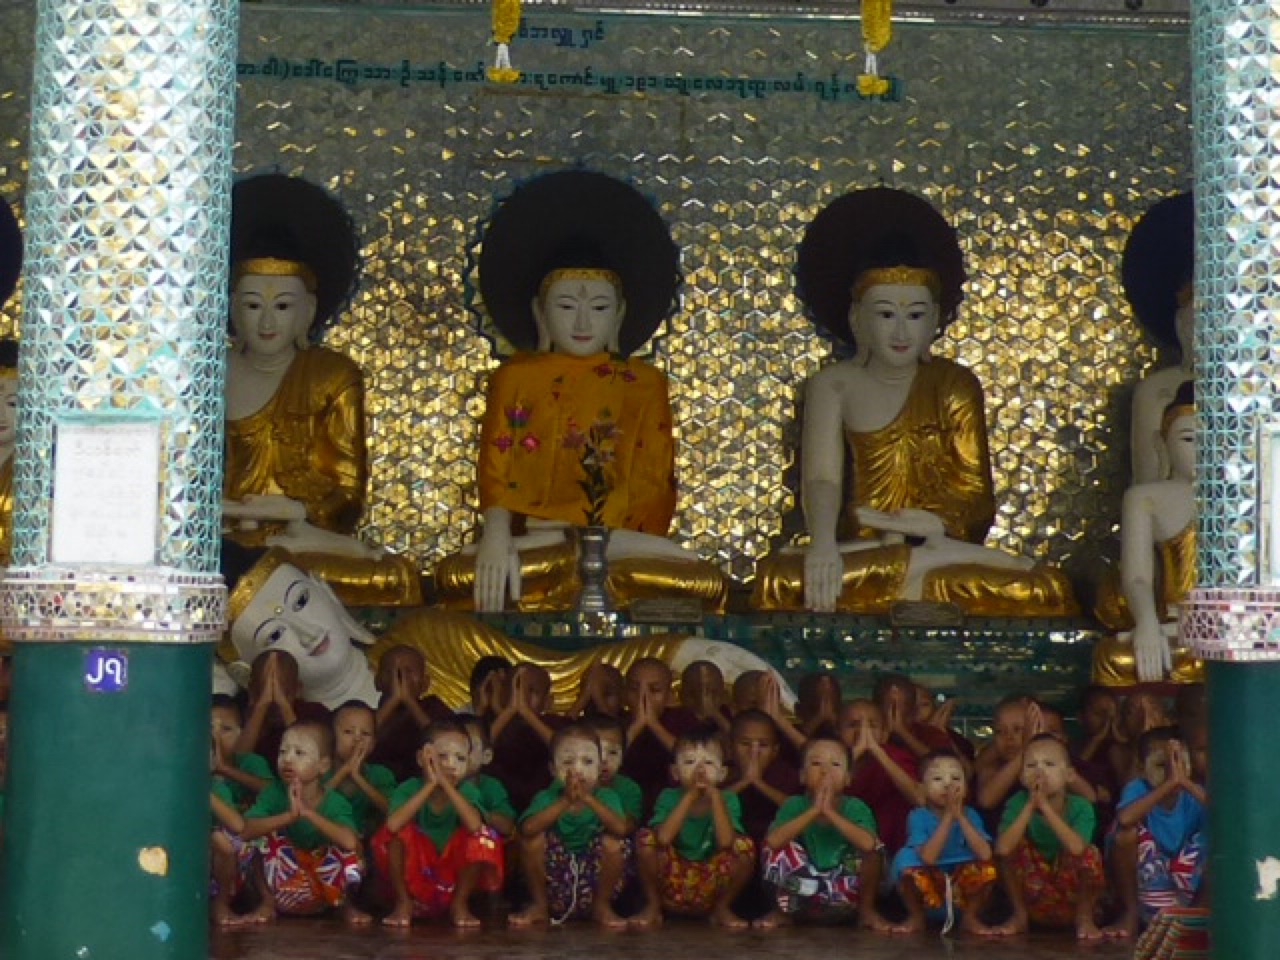 7.1477174733.children-chanting-devotion-to-buddha-at-shweda